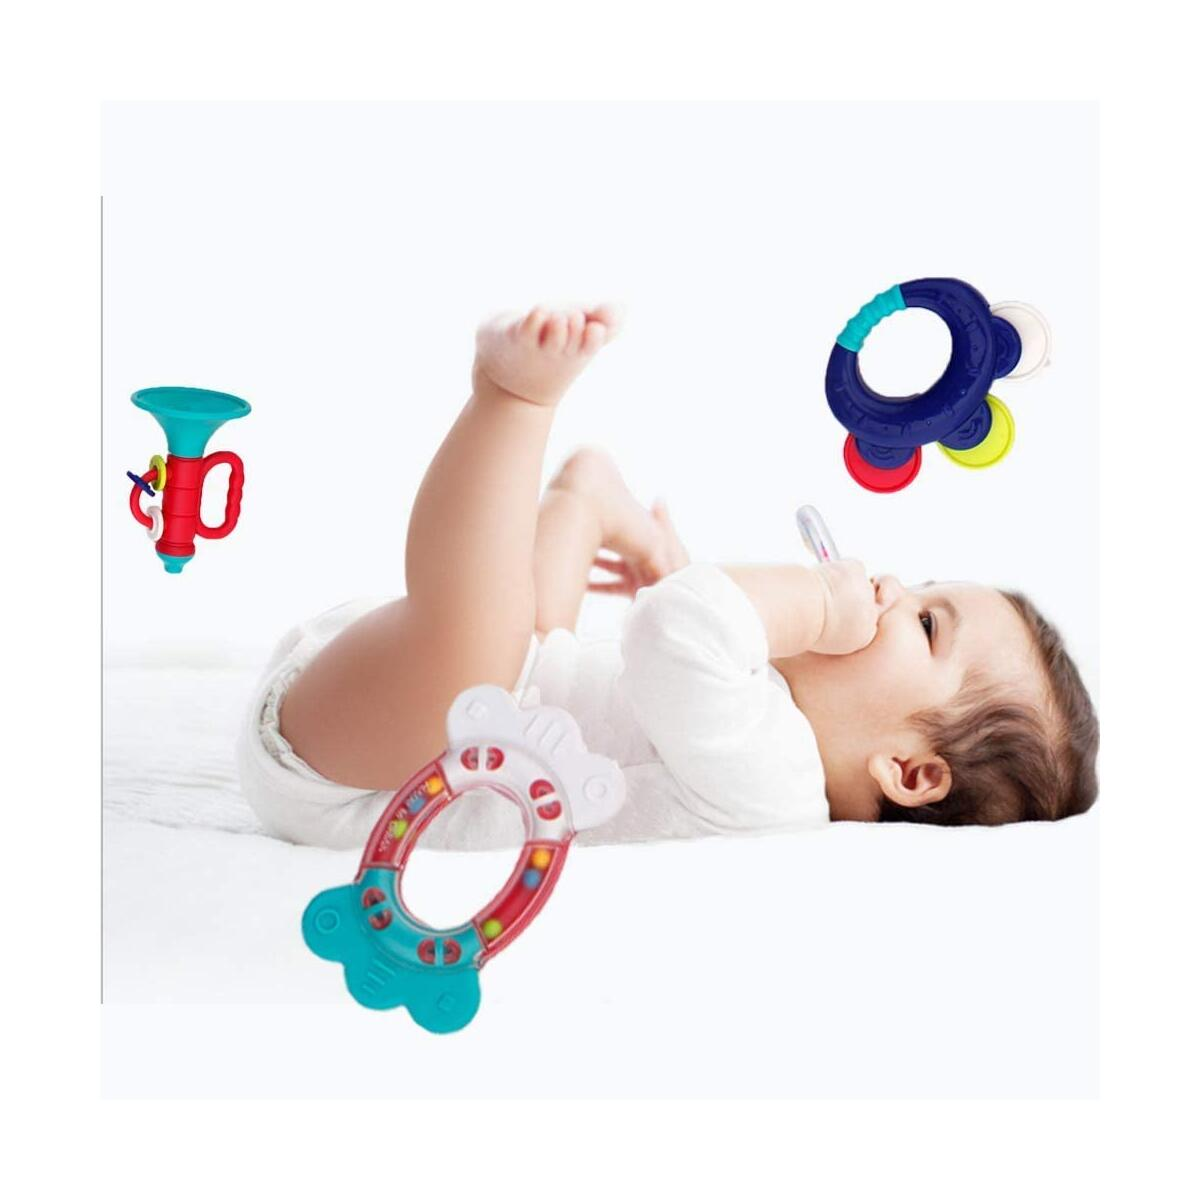 WISHTIME Baby Rattle Teether Baby Toys - 10pcs Shaker, Grab, Shaking Bell Rattle Set Infant Newborn Toys with Storage Box Gift for Babies 0 3 6 9 12 Months